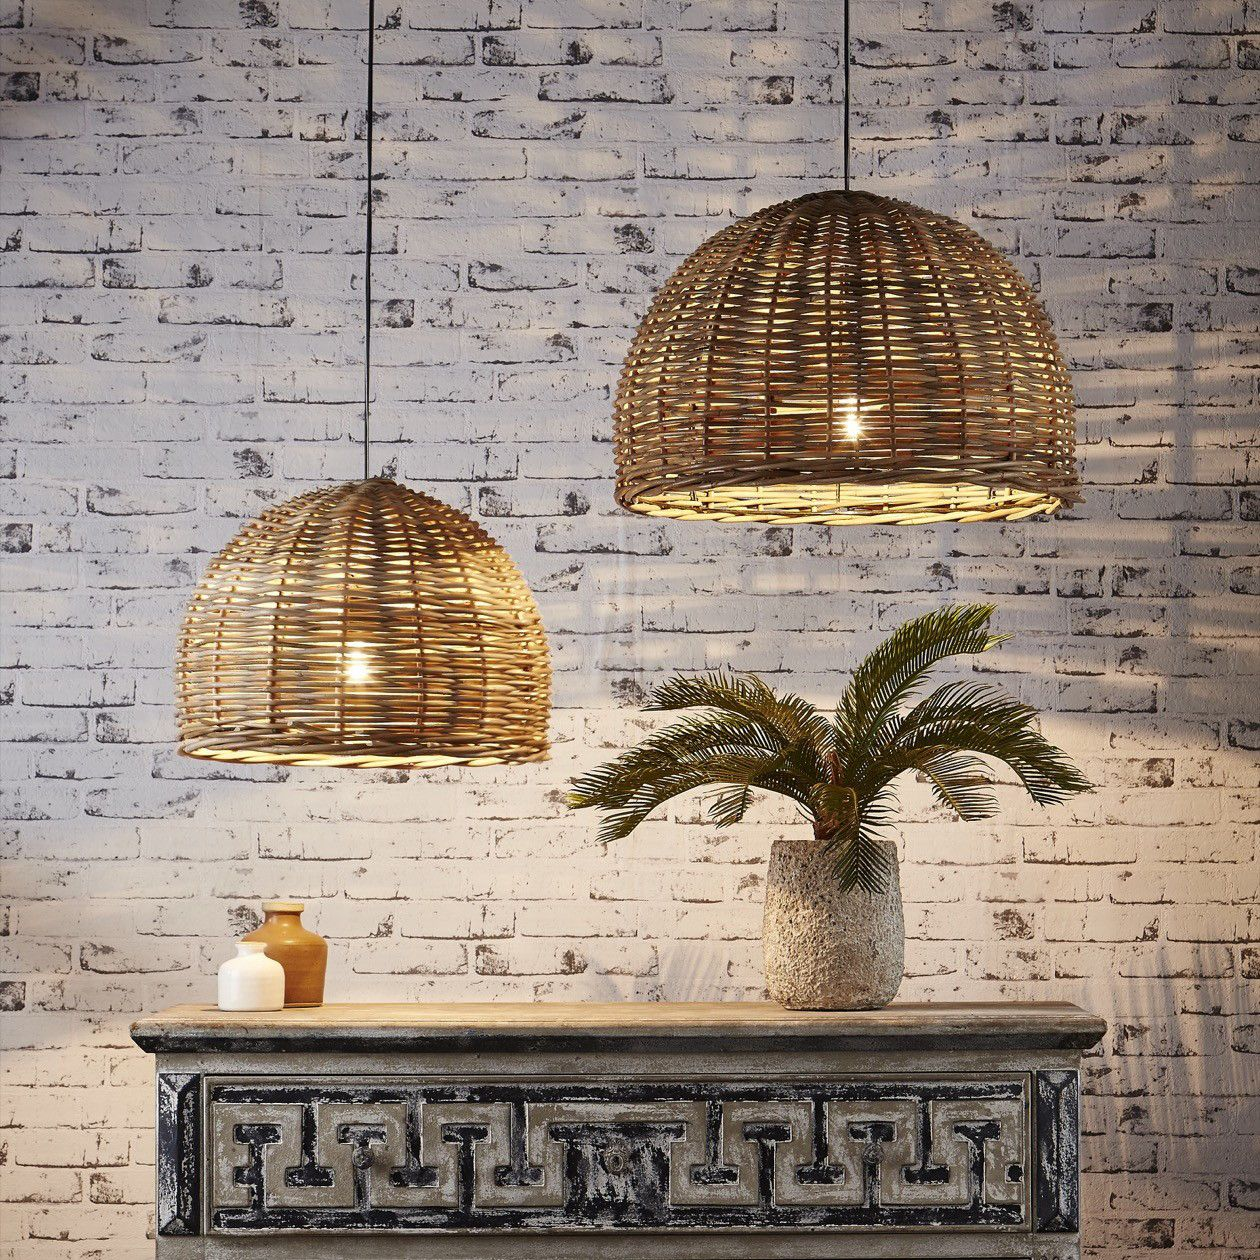 Cane Pendant Lights Adding Beautiful Curves And Natural